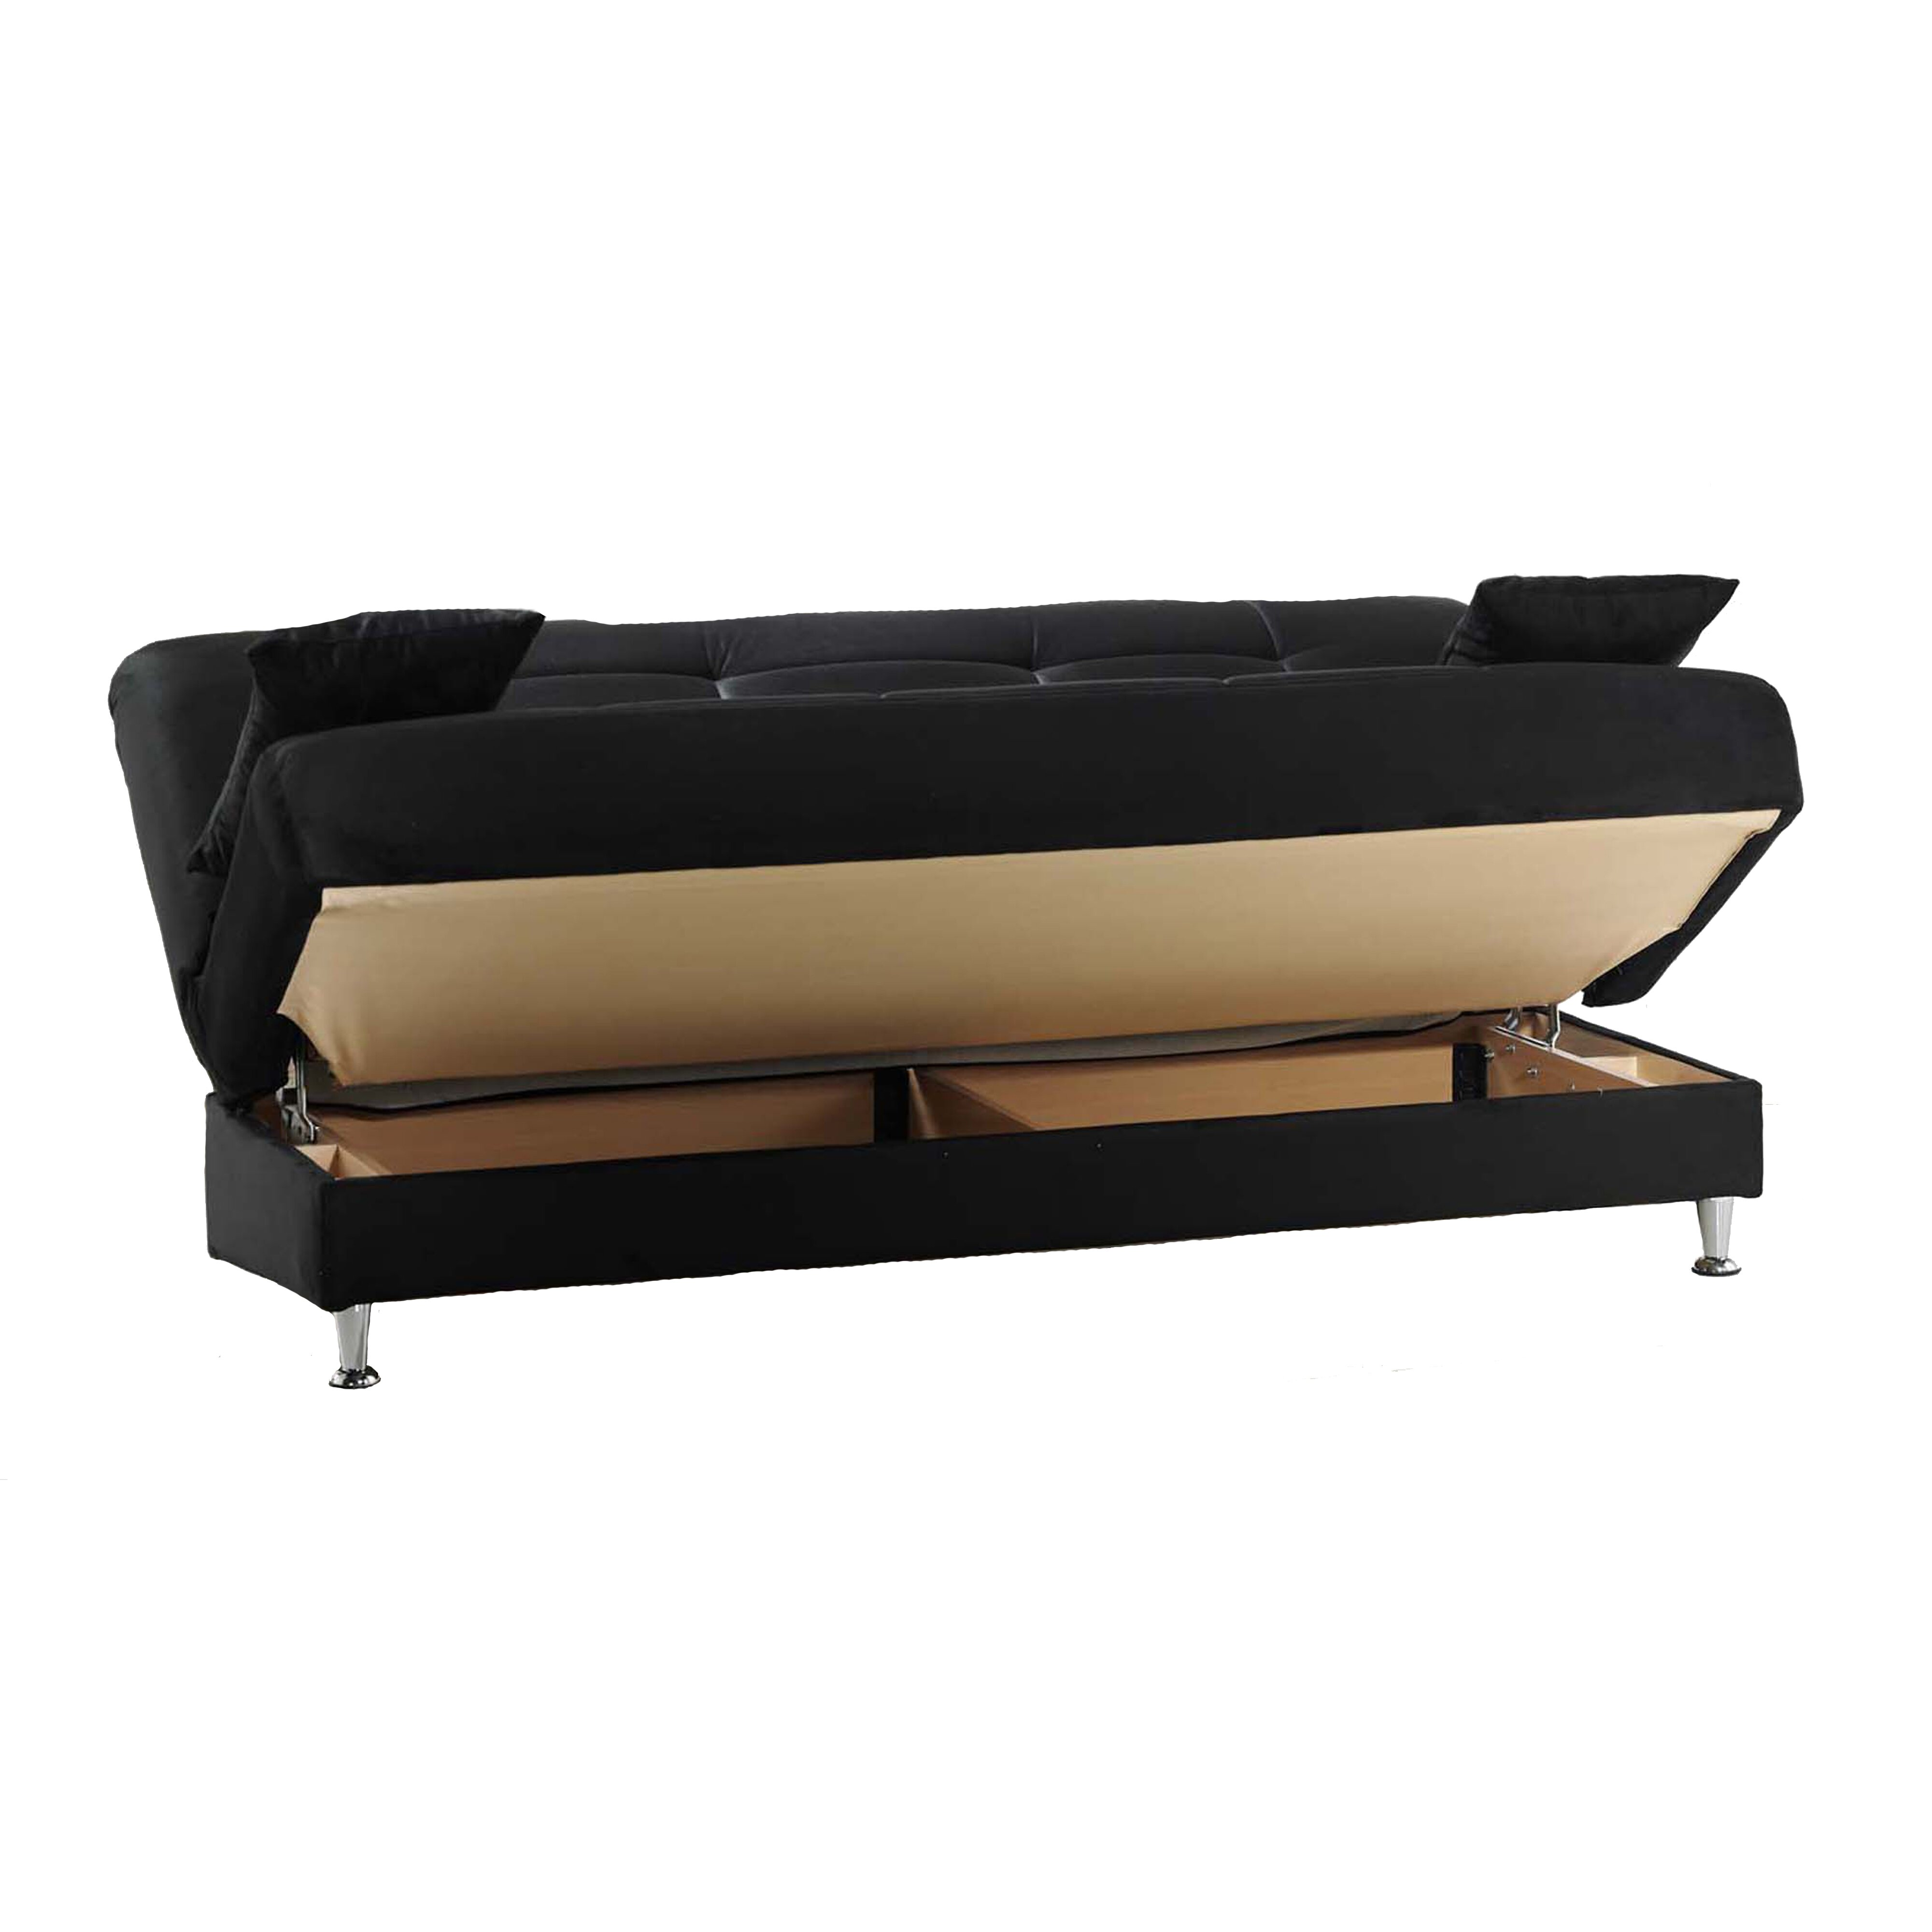 Image Result For Broyhill Sofa Bed Reviews